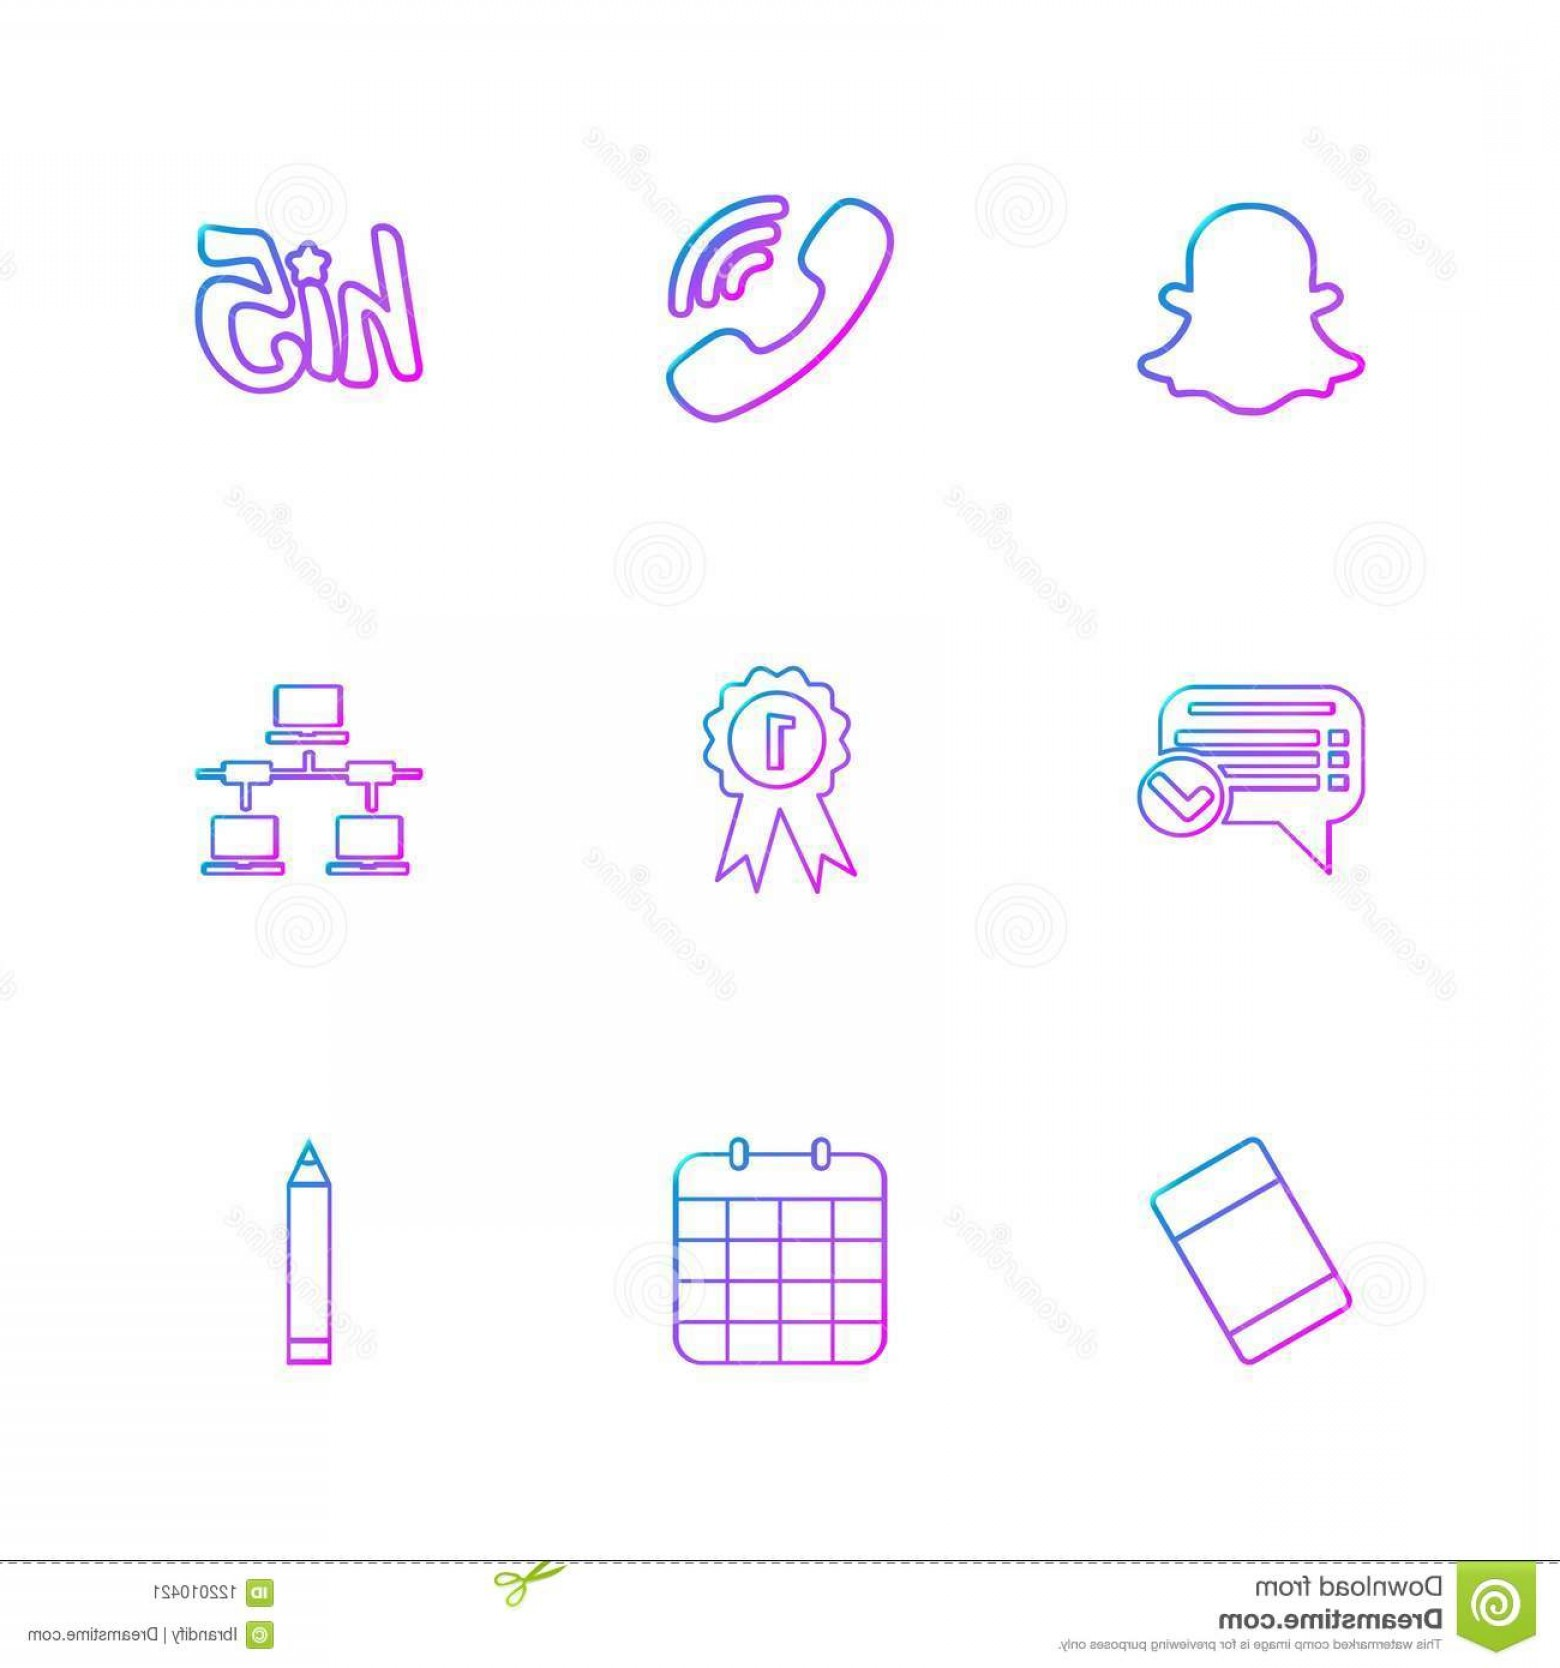 Pencil Icon Vectors Social Media: Snapchat Viber Hi Message Badge Network Eraser Cel Snapchat Viber Hi Message Badge Network Eraser Celender Pencil Icons Flat Icon Image